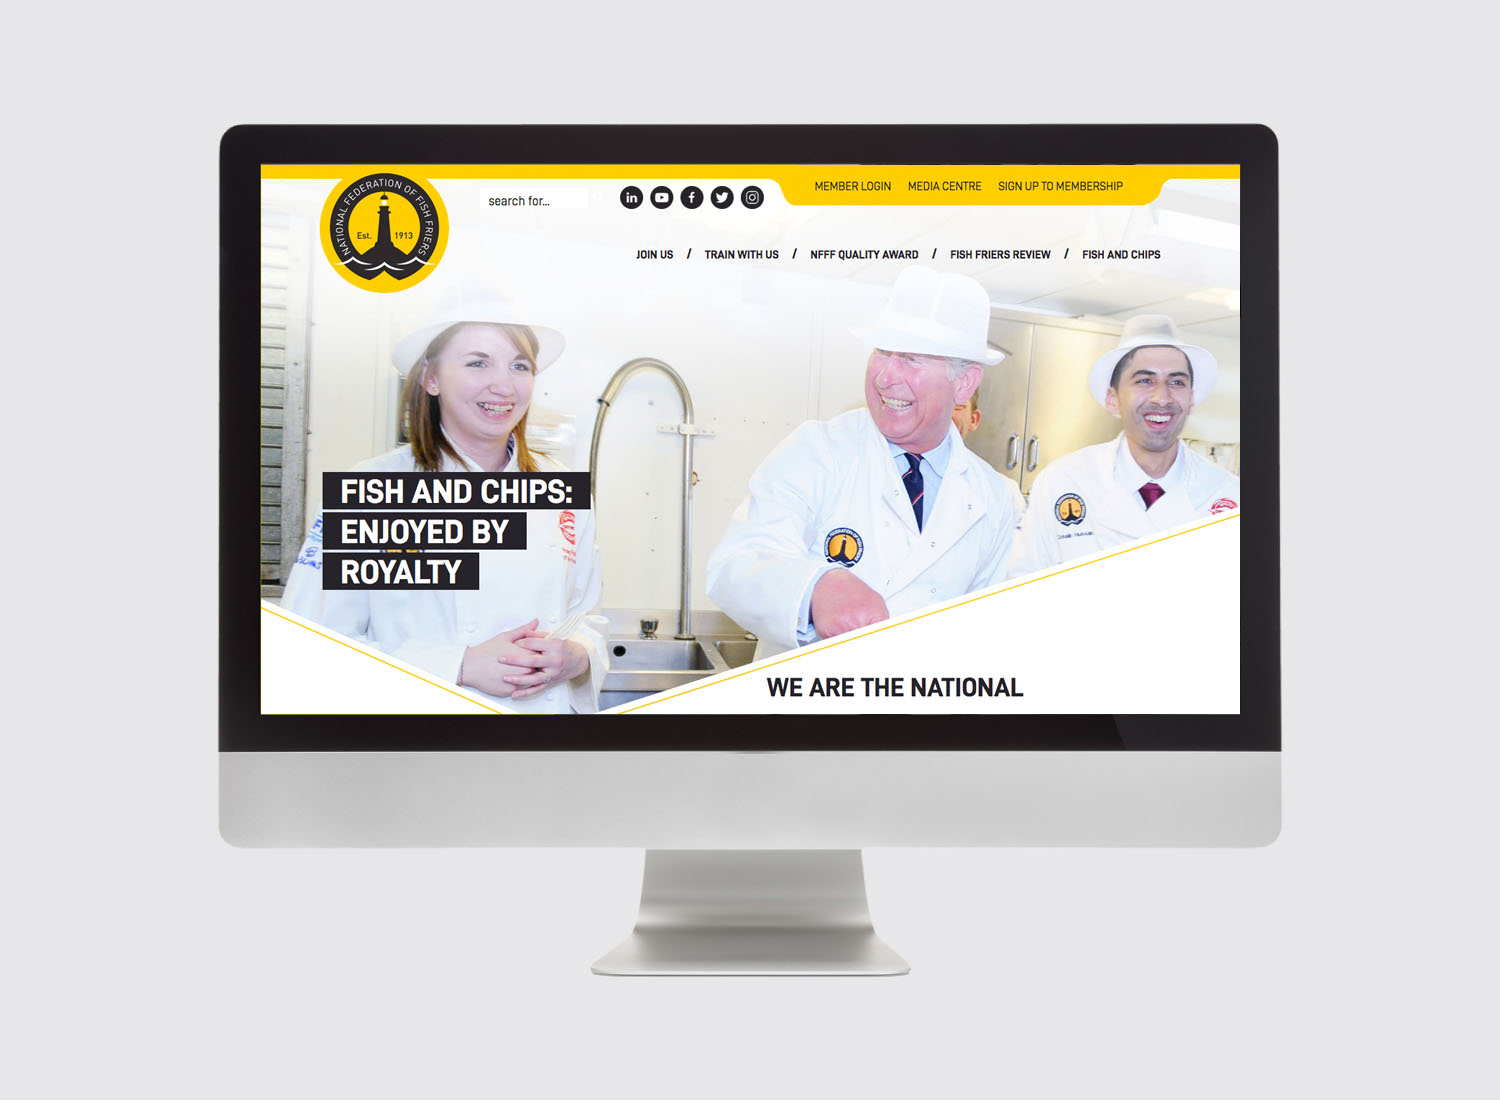 National Federation of Fish Friers